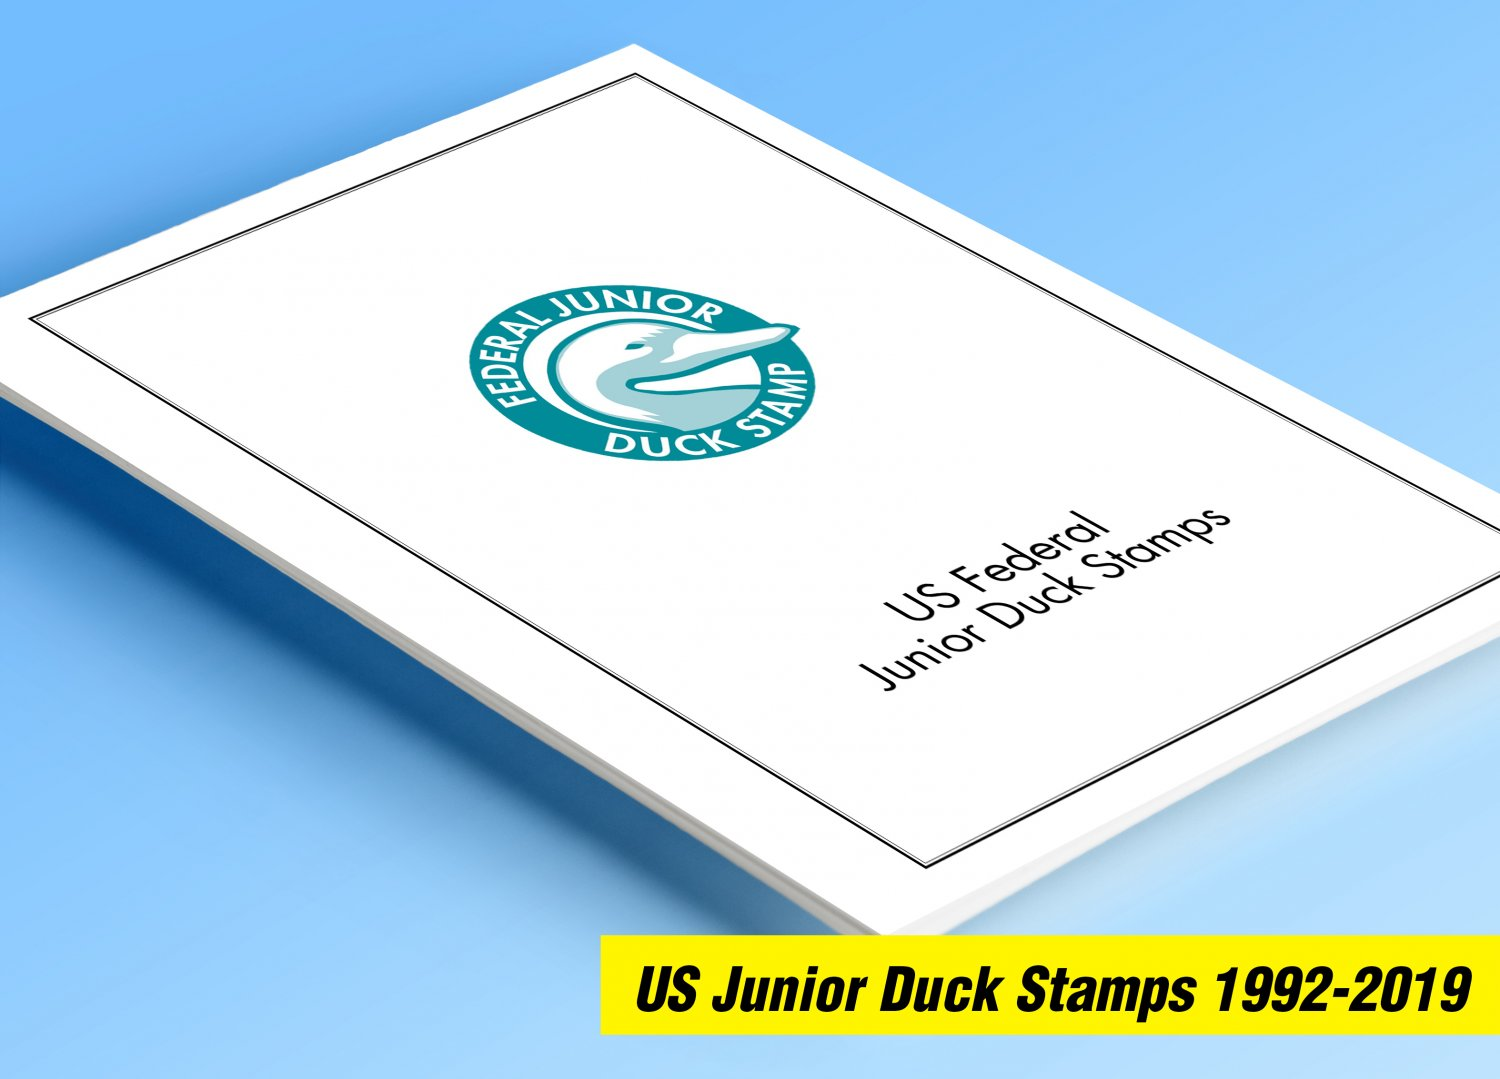 COLOR PRINTED US JUNIOR DUCK STAMPS 1992-2019 STAMP ALBUM PAGES (21 illustrated pages)